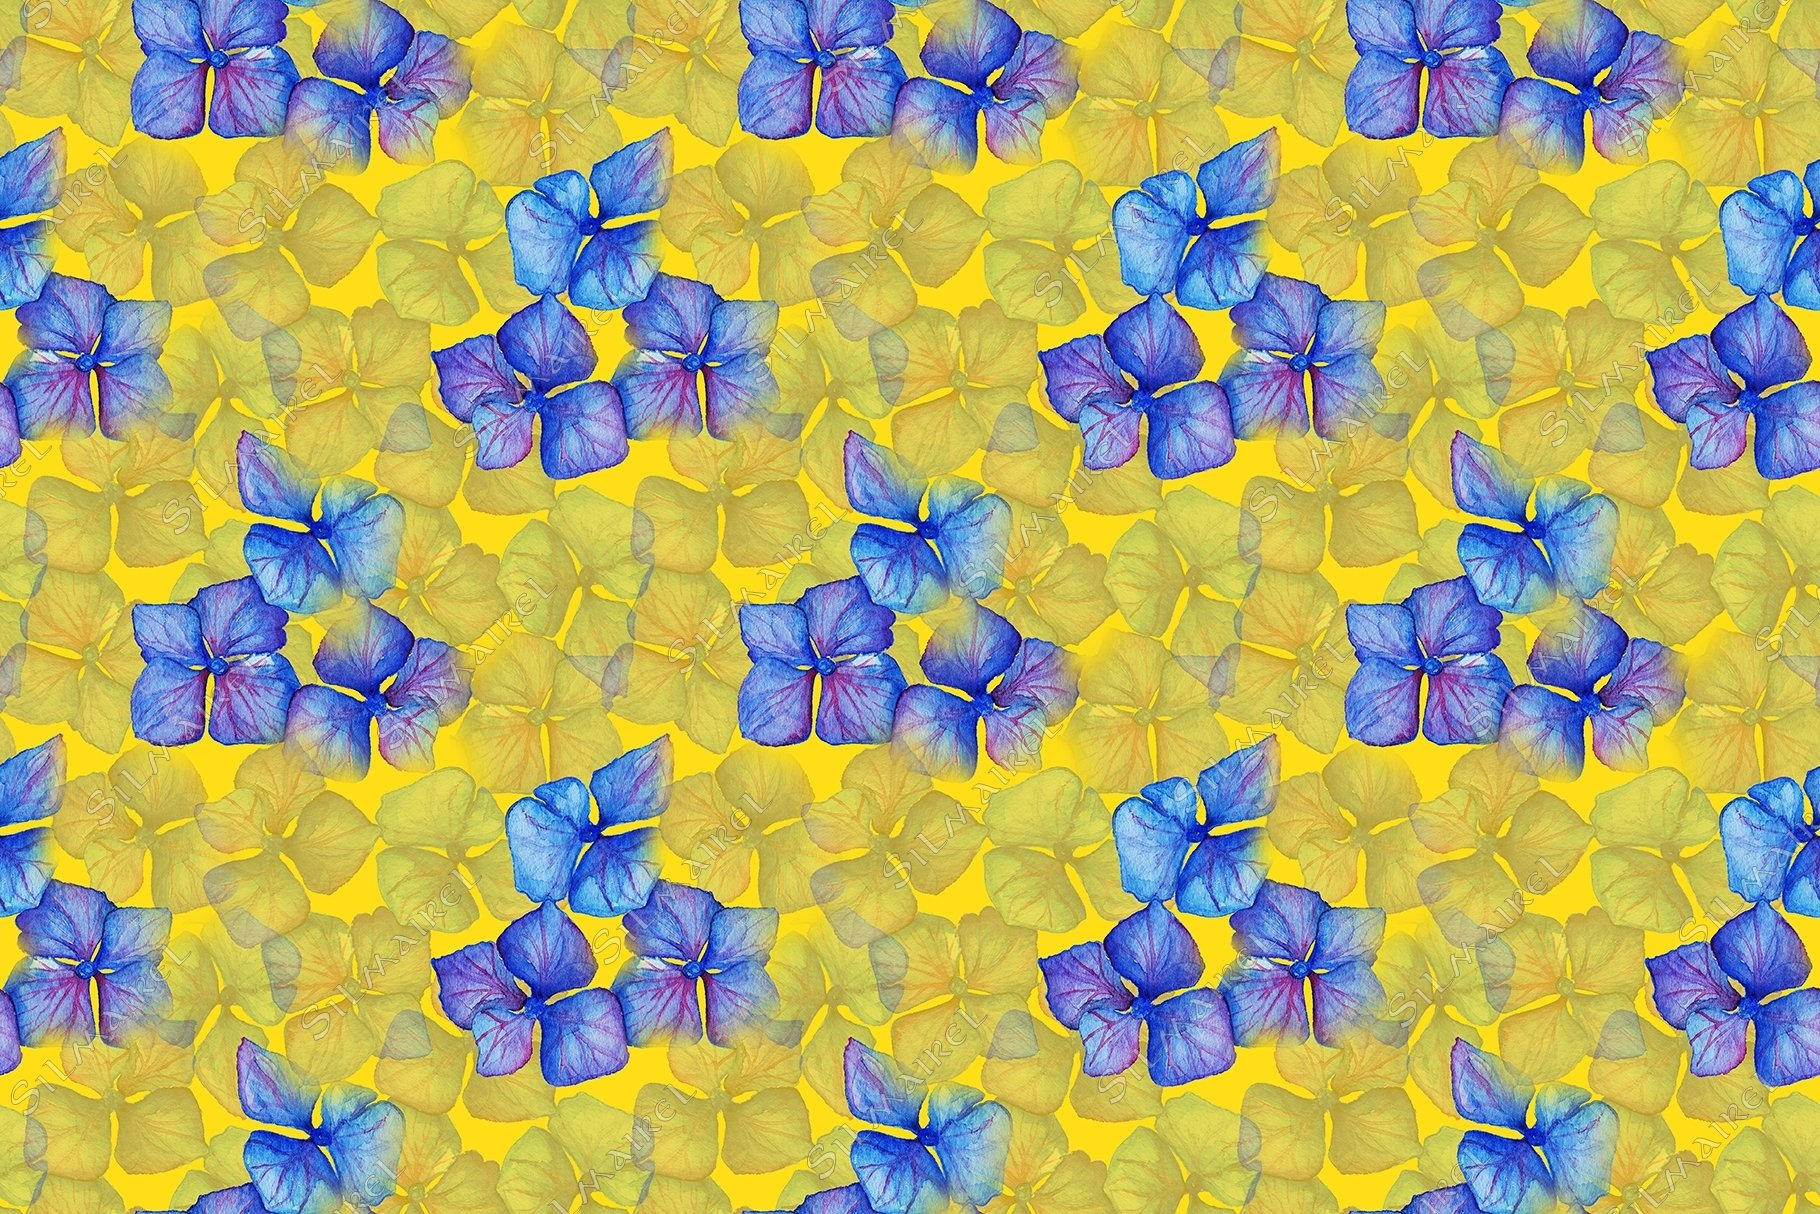 Blue violet hydrangea flowers composition seamless pattern example image 2